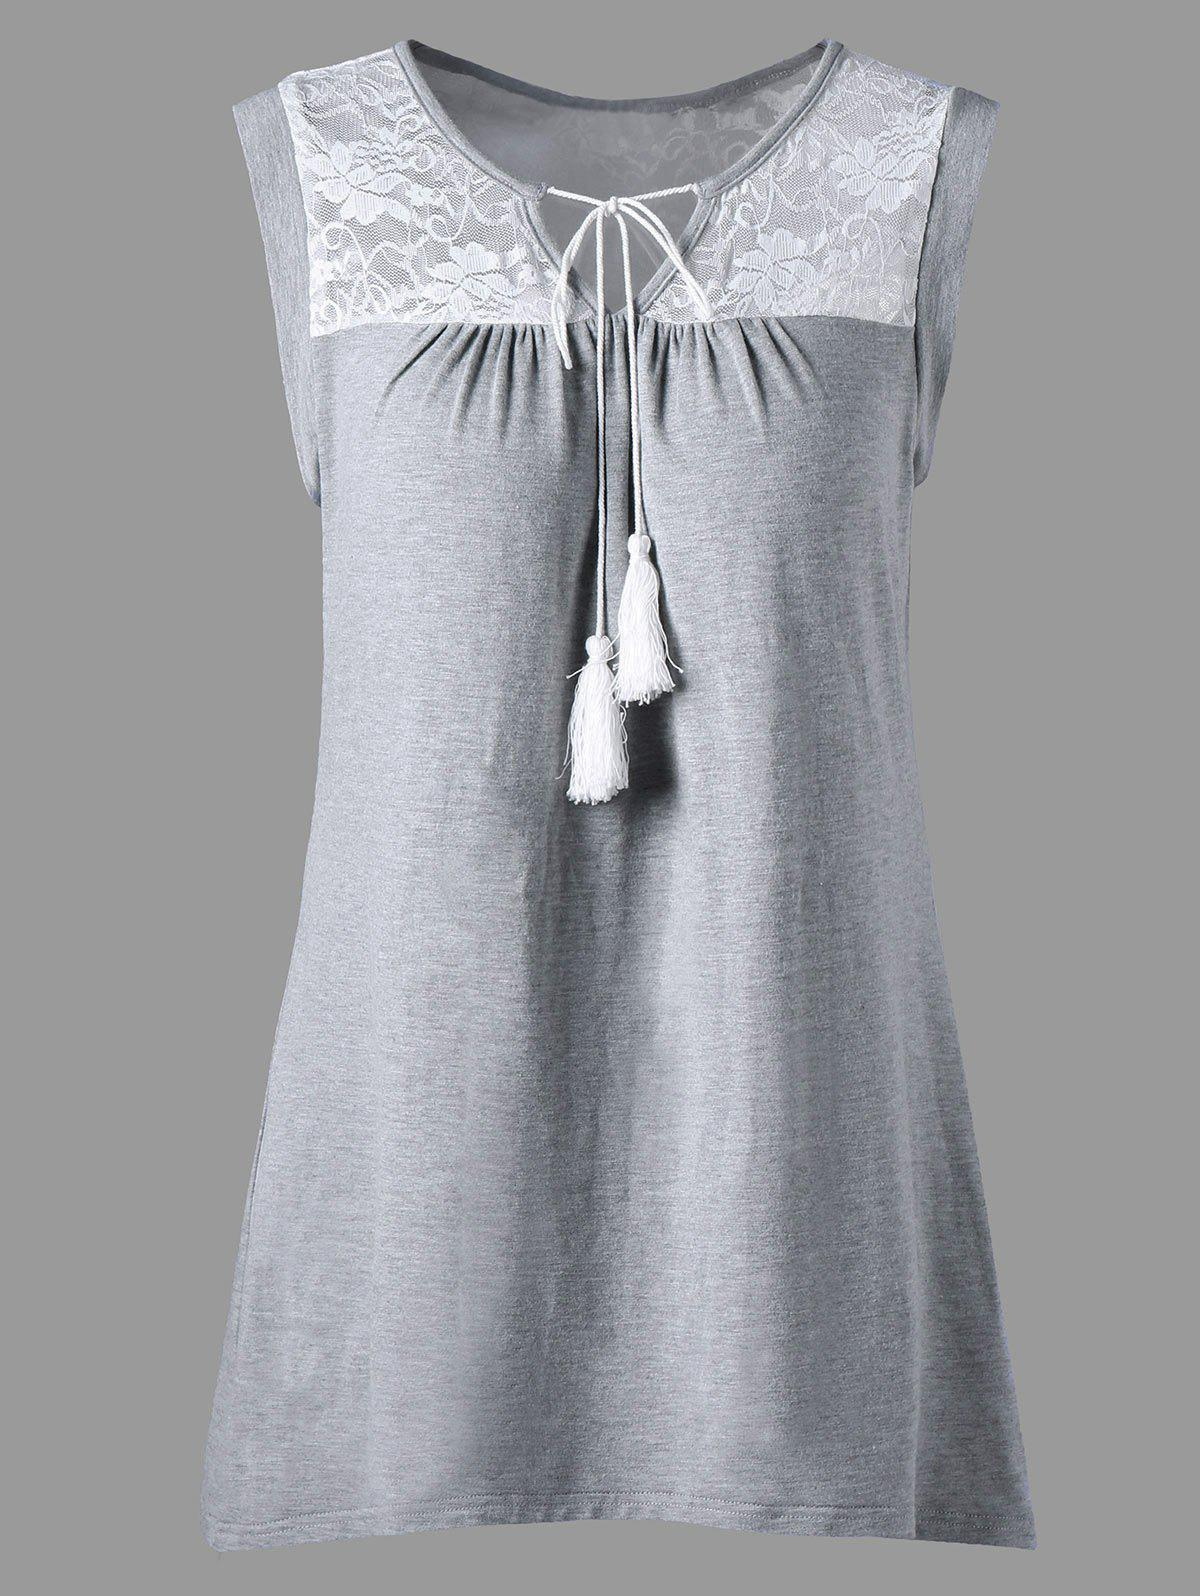 Fashion Sleeveless Sheer Lace Yoke Tunic Top